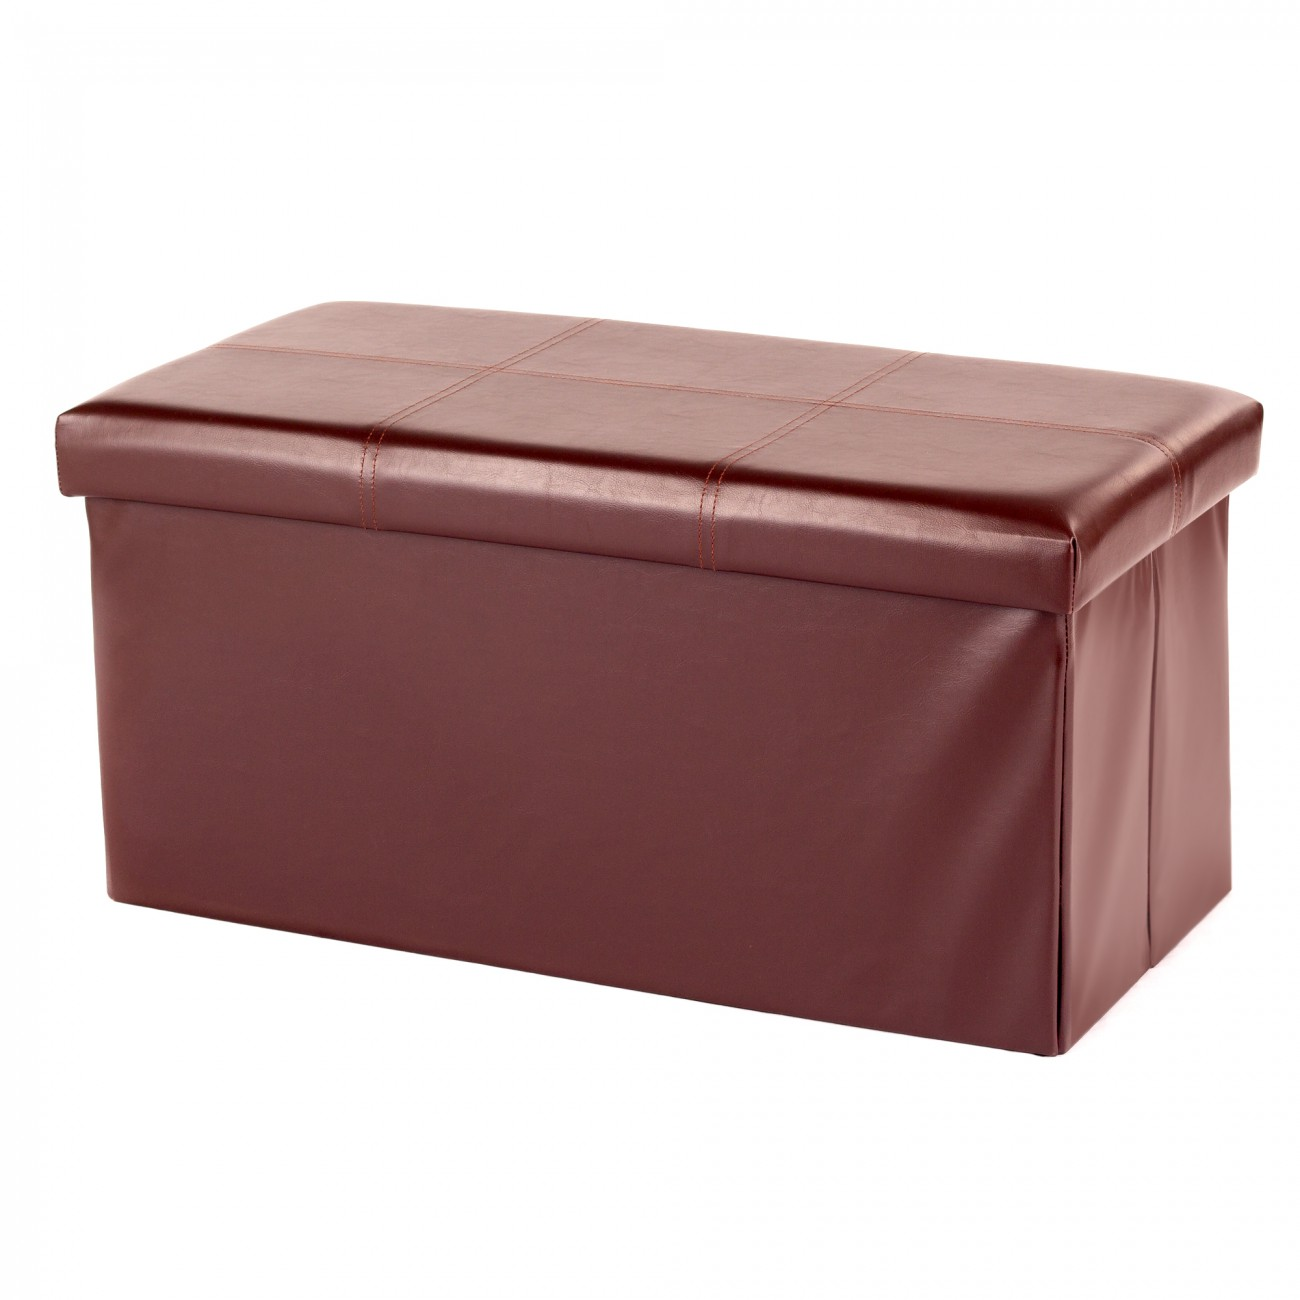 MY SIT Foldable Ottoman Storage Box Synthetic Leather 80 x 40 x 40 cm brown - MY SIT Foldable Ottoman Storage Box Synthetic Leather 80 X 40 X 40